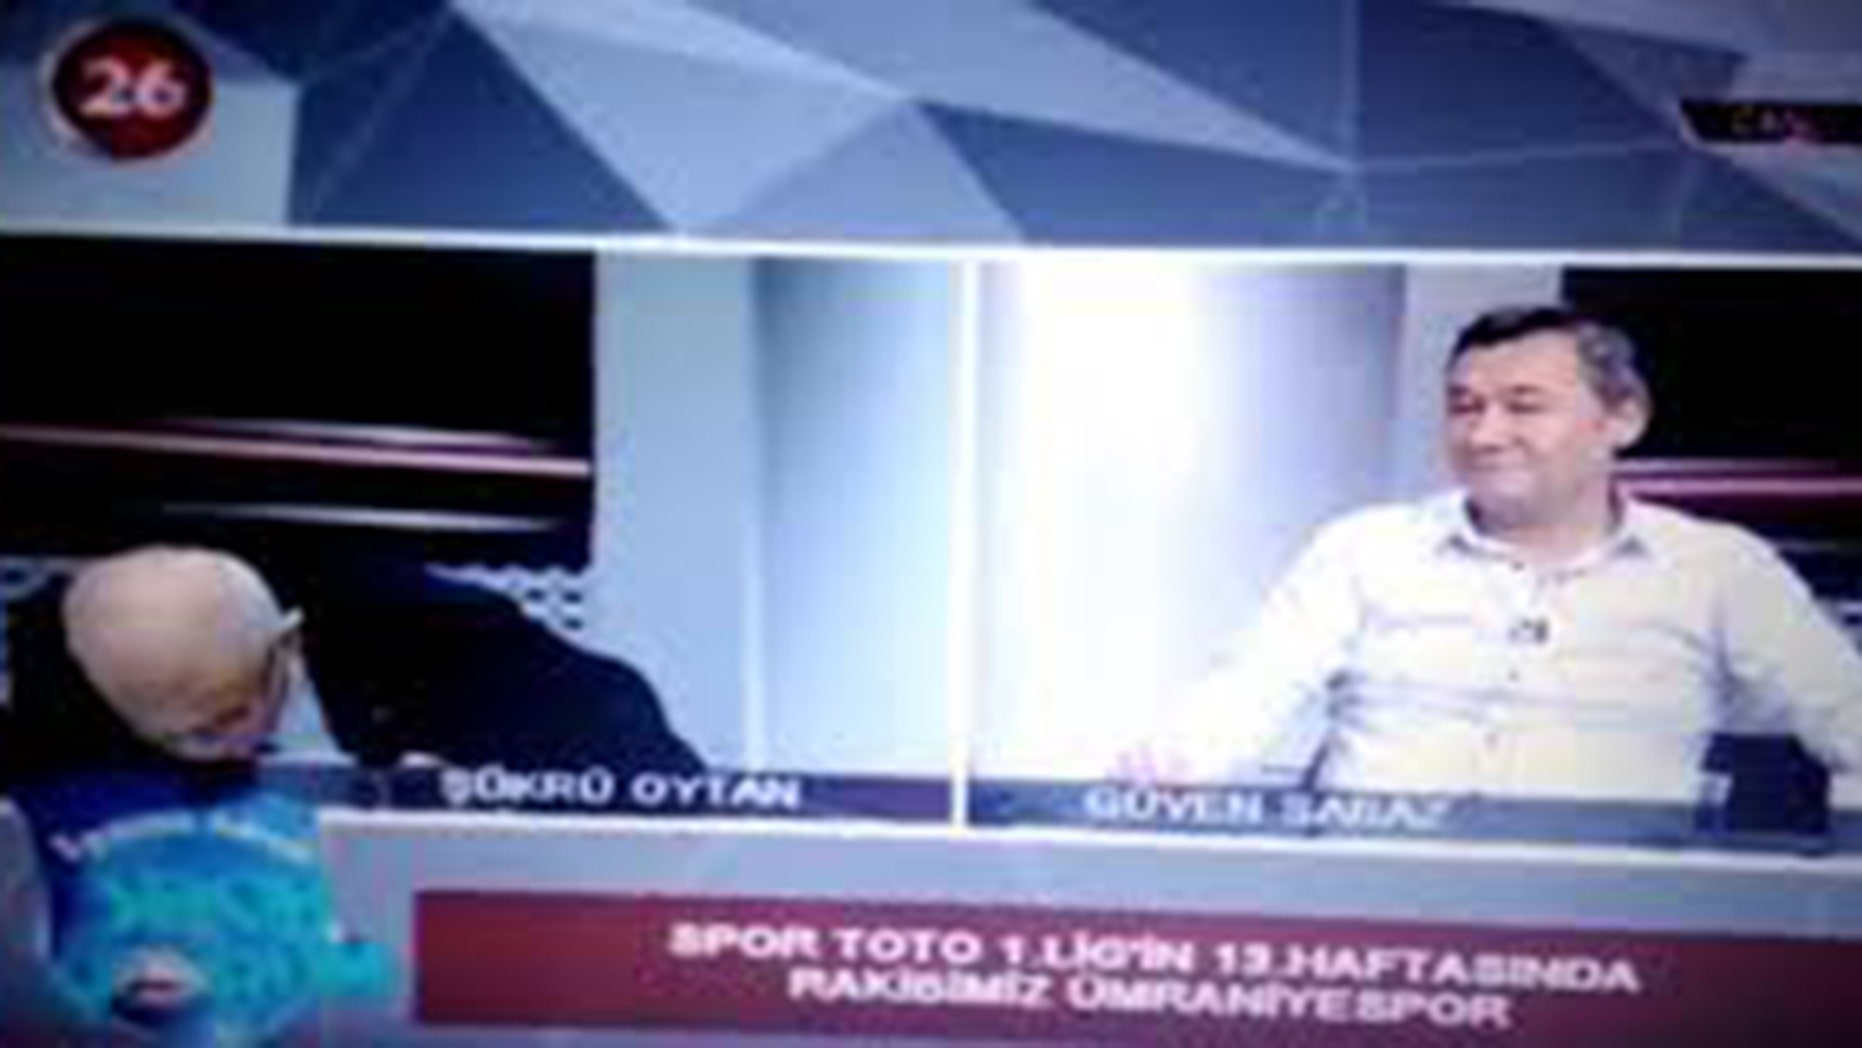 Sukru Oytan suffered a heart attack in the air.